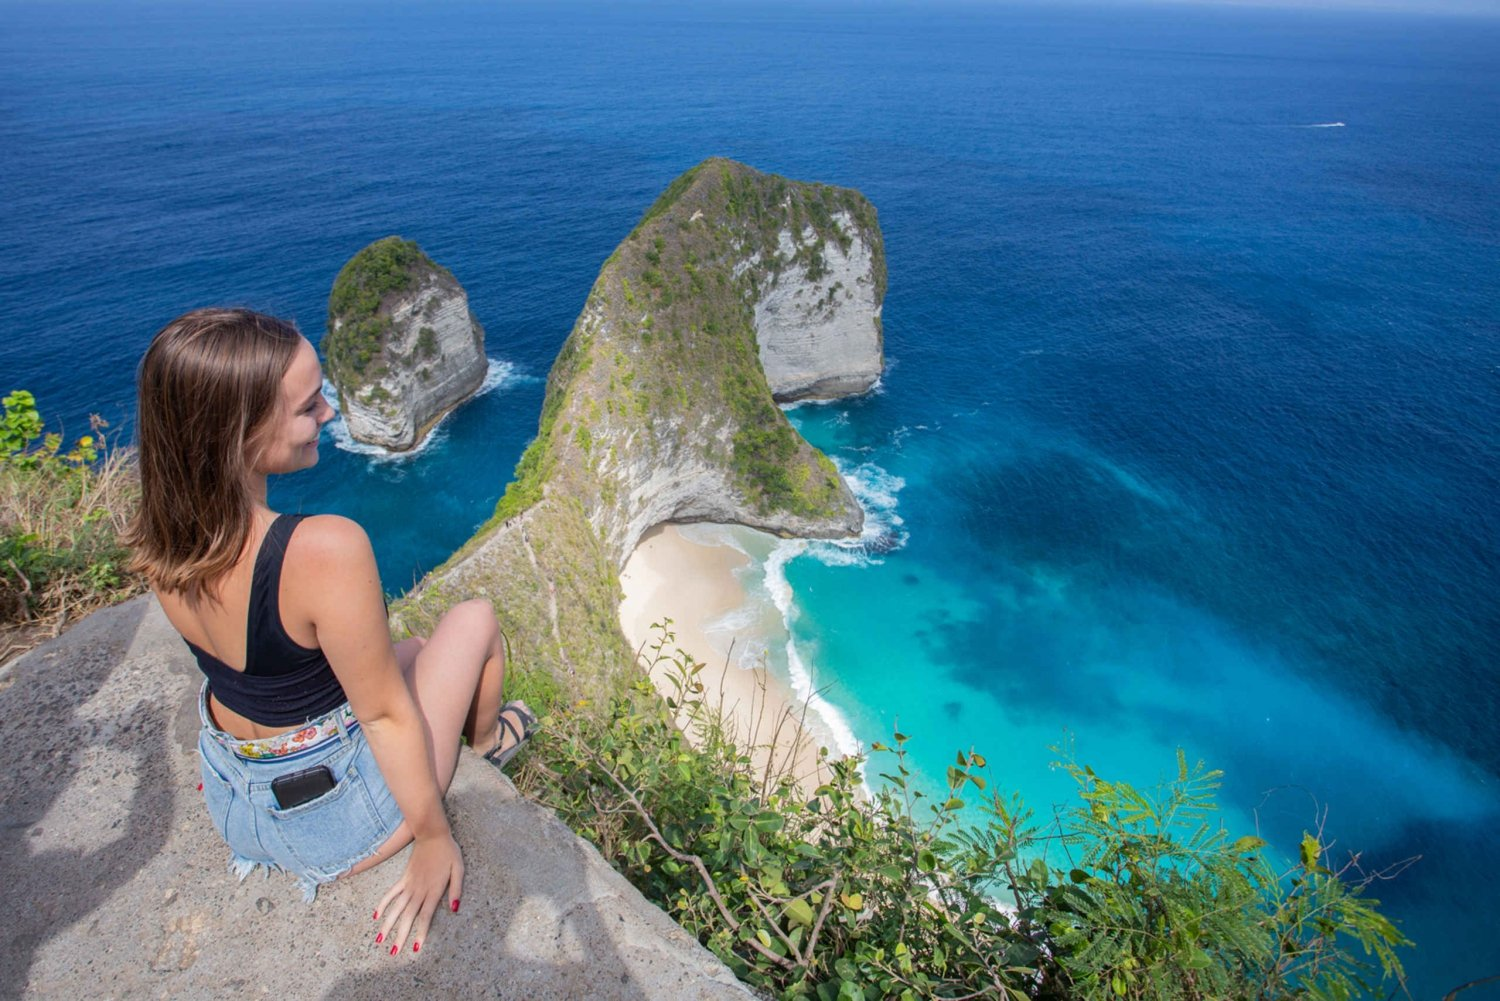 From 2-Day Nusa Penida & Lembongan Complete Tour